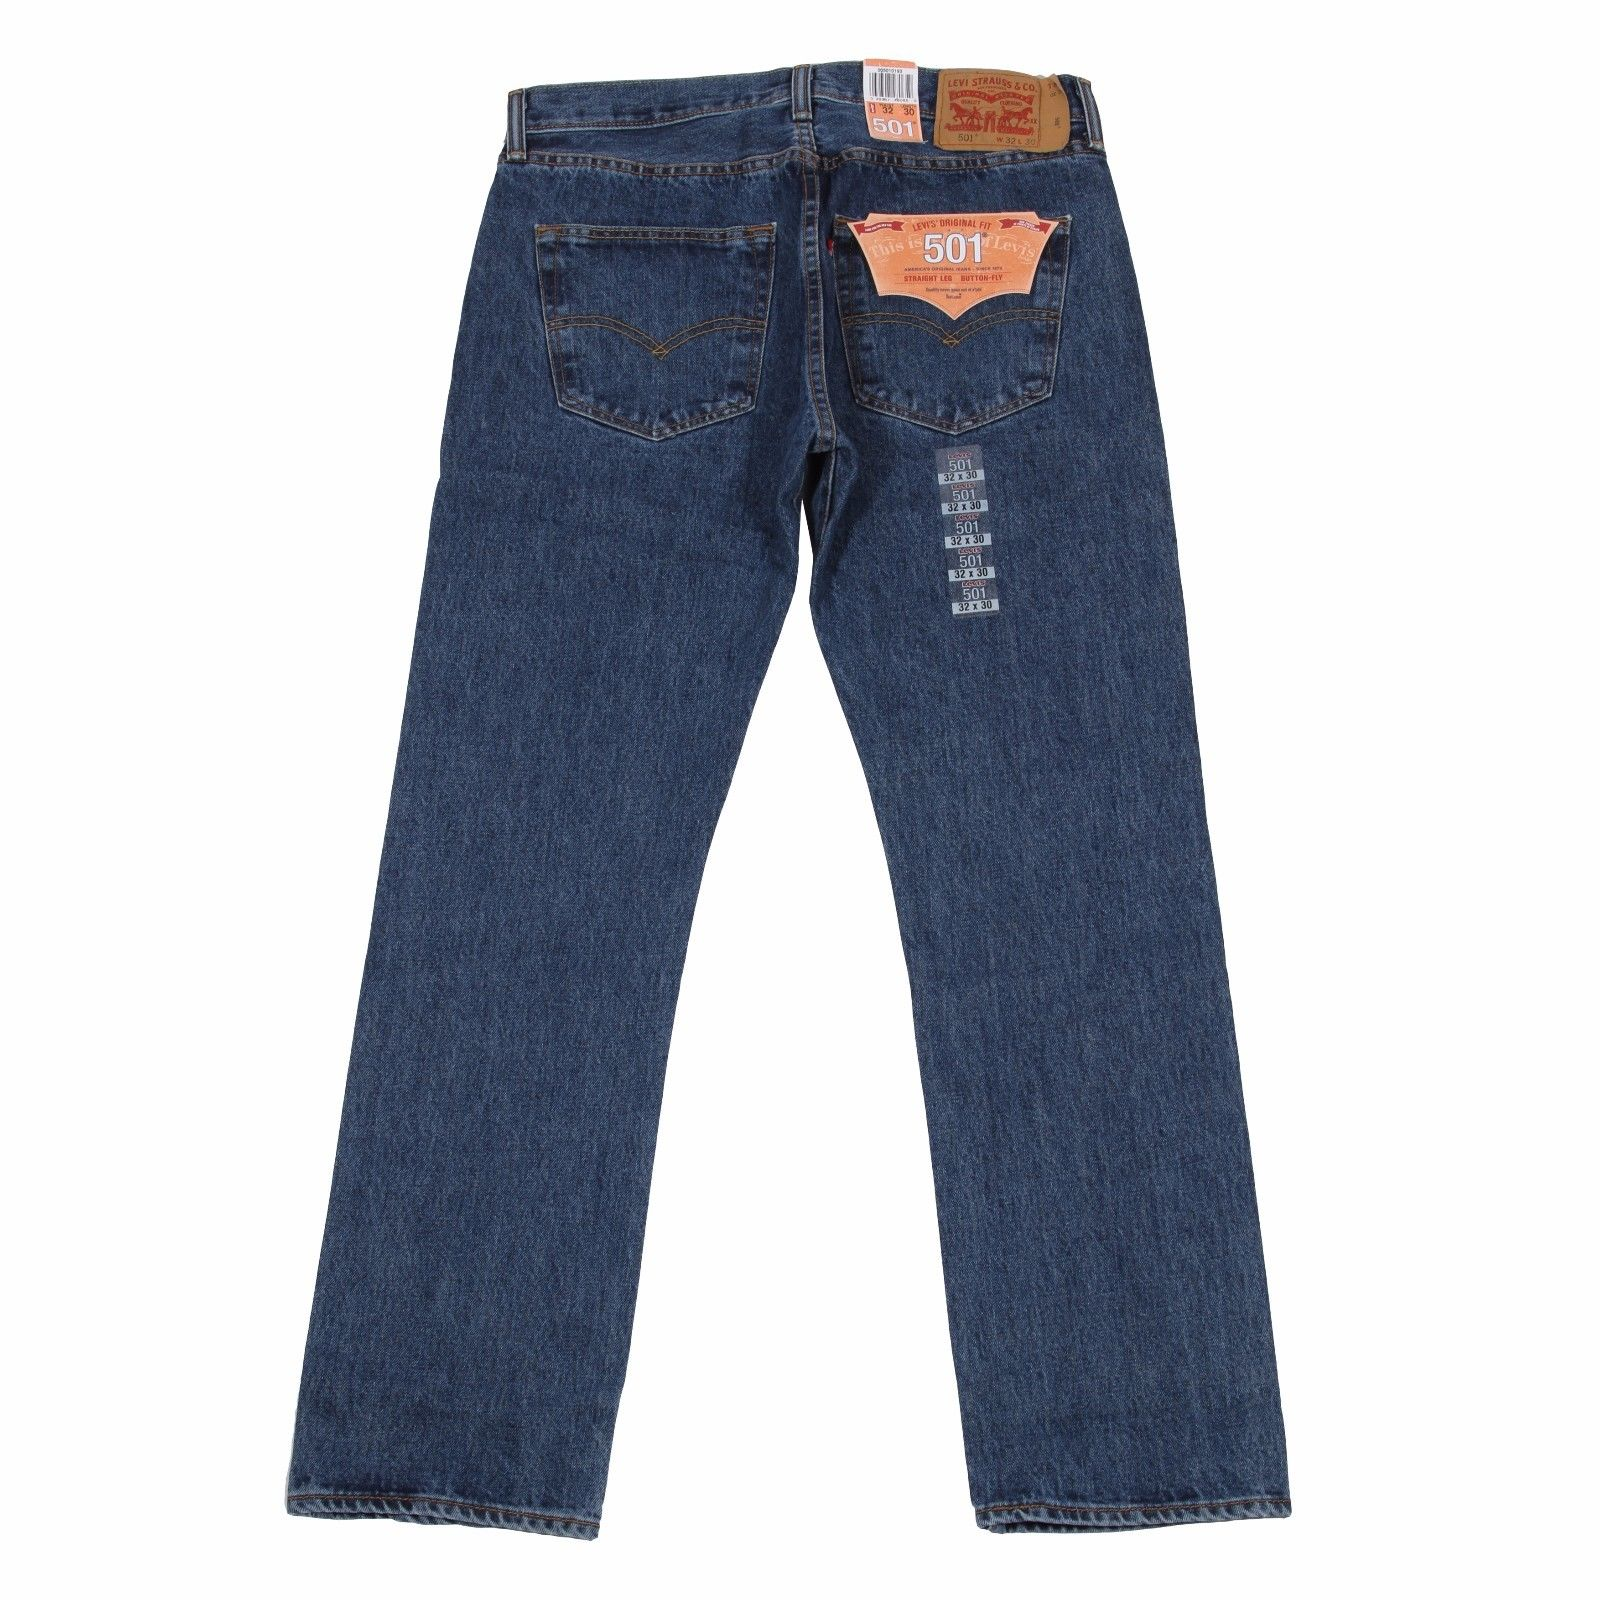 levis 501 button fly jeans many sizes colors new w tags. Black Bedroom Furniture Sets. Home Design Ideas